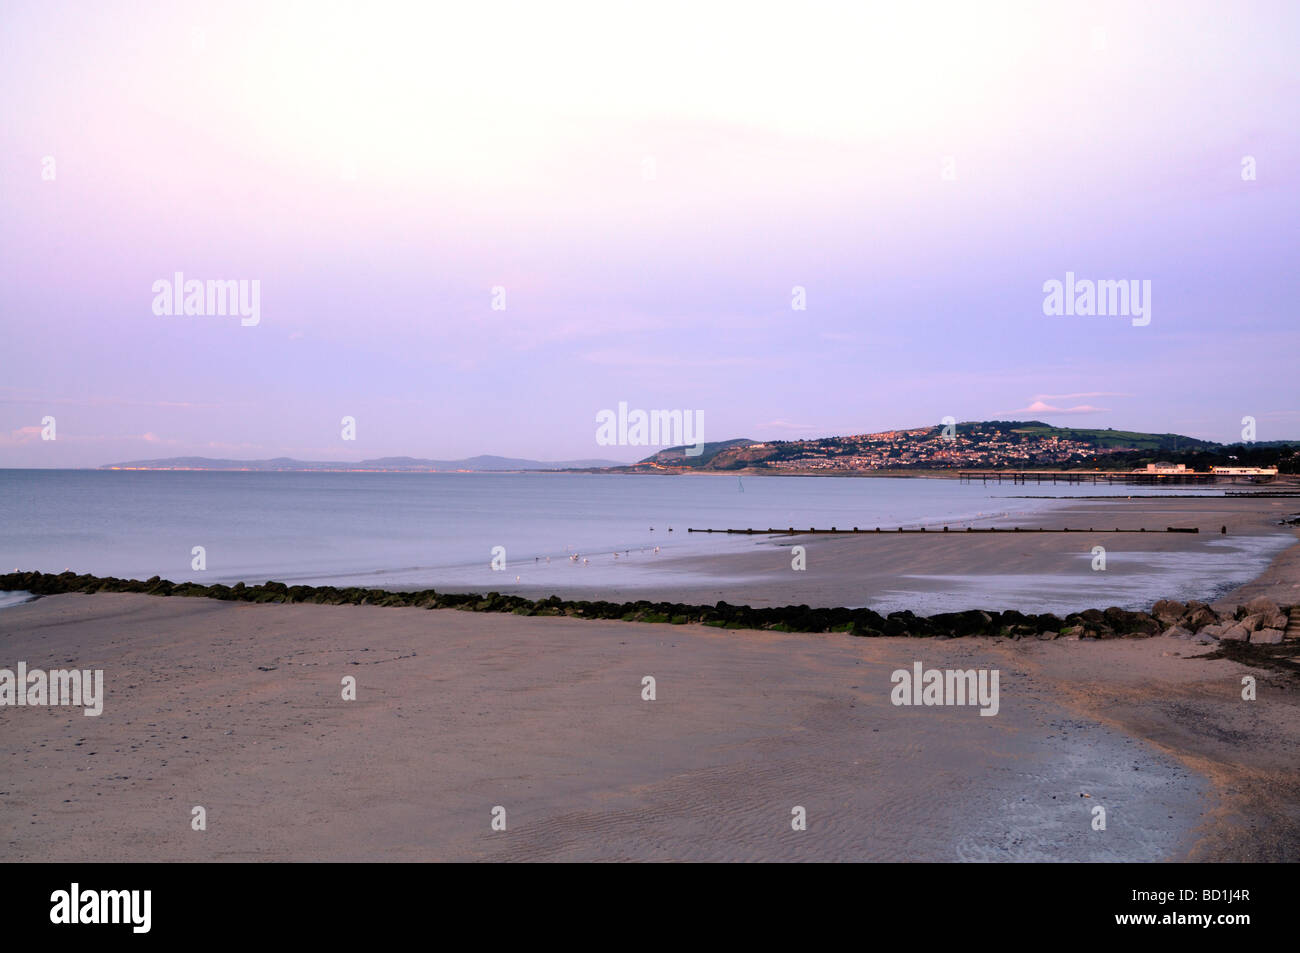 Colwyn Bay a view of Colwyn pier at dusk. - Stock Image